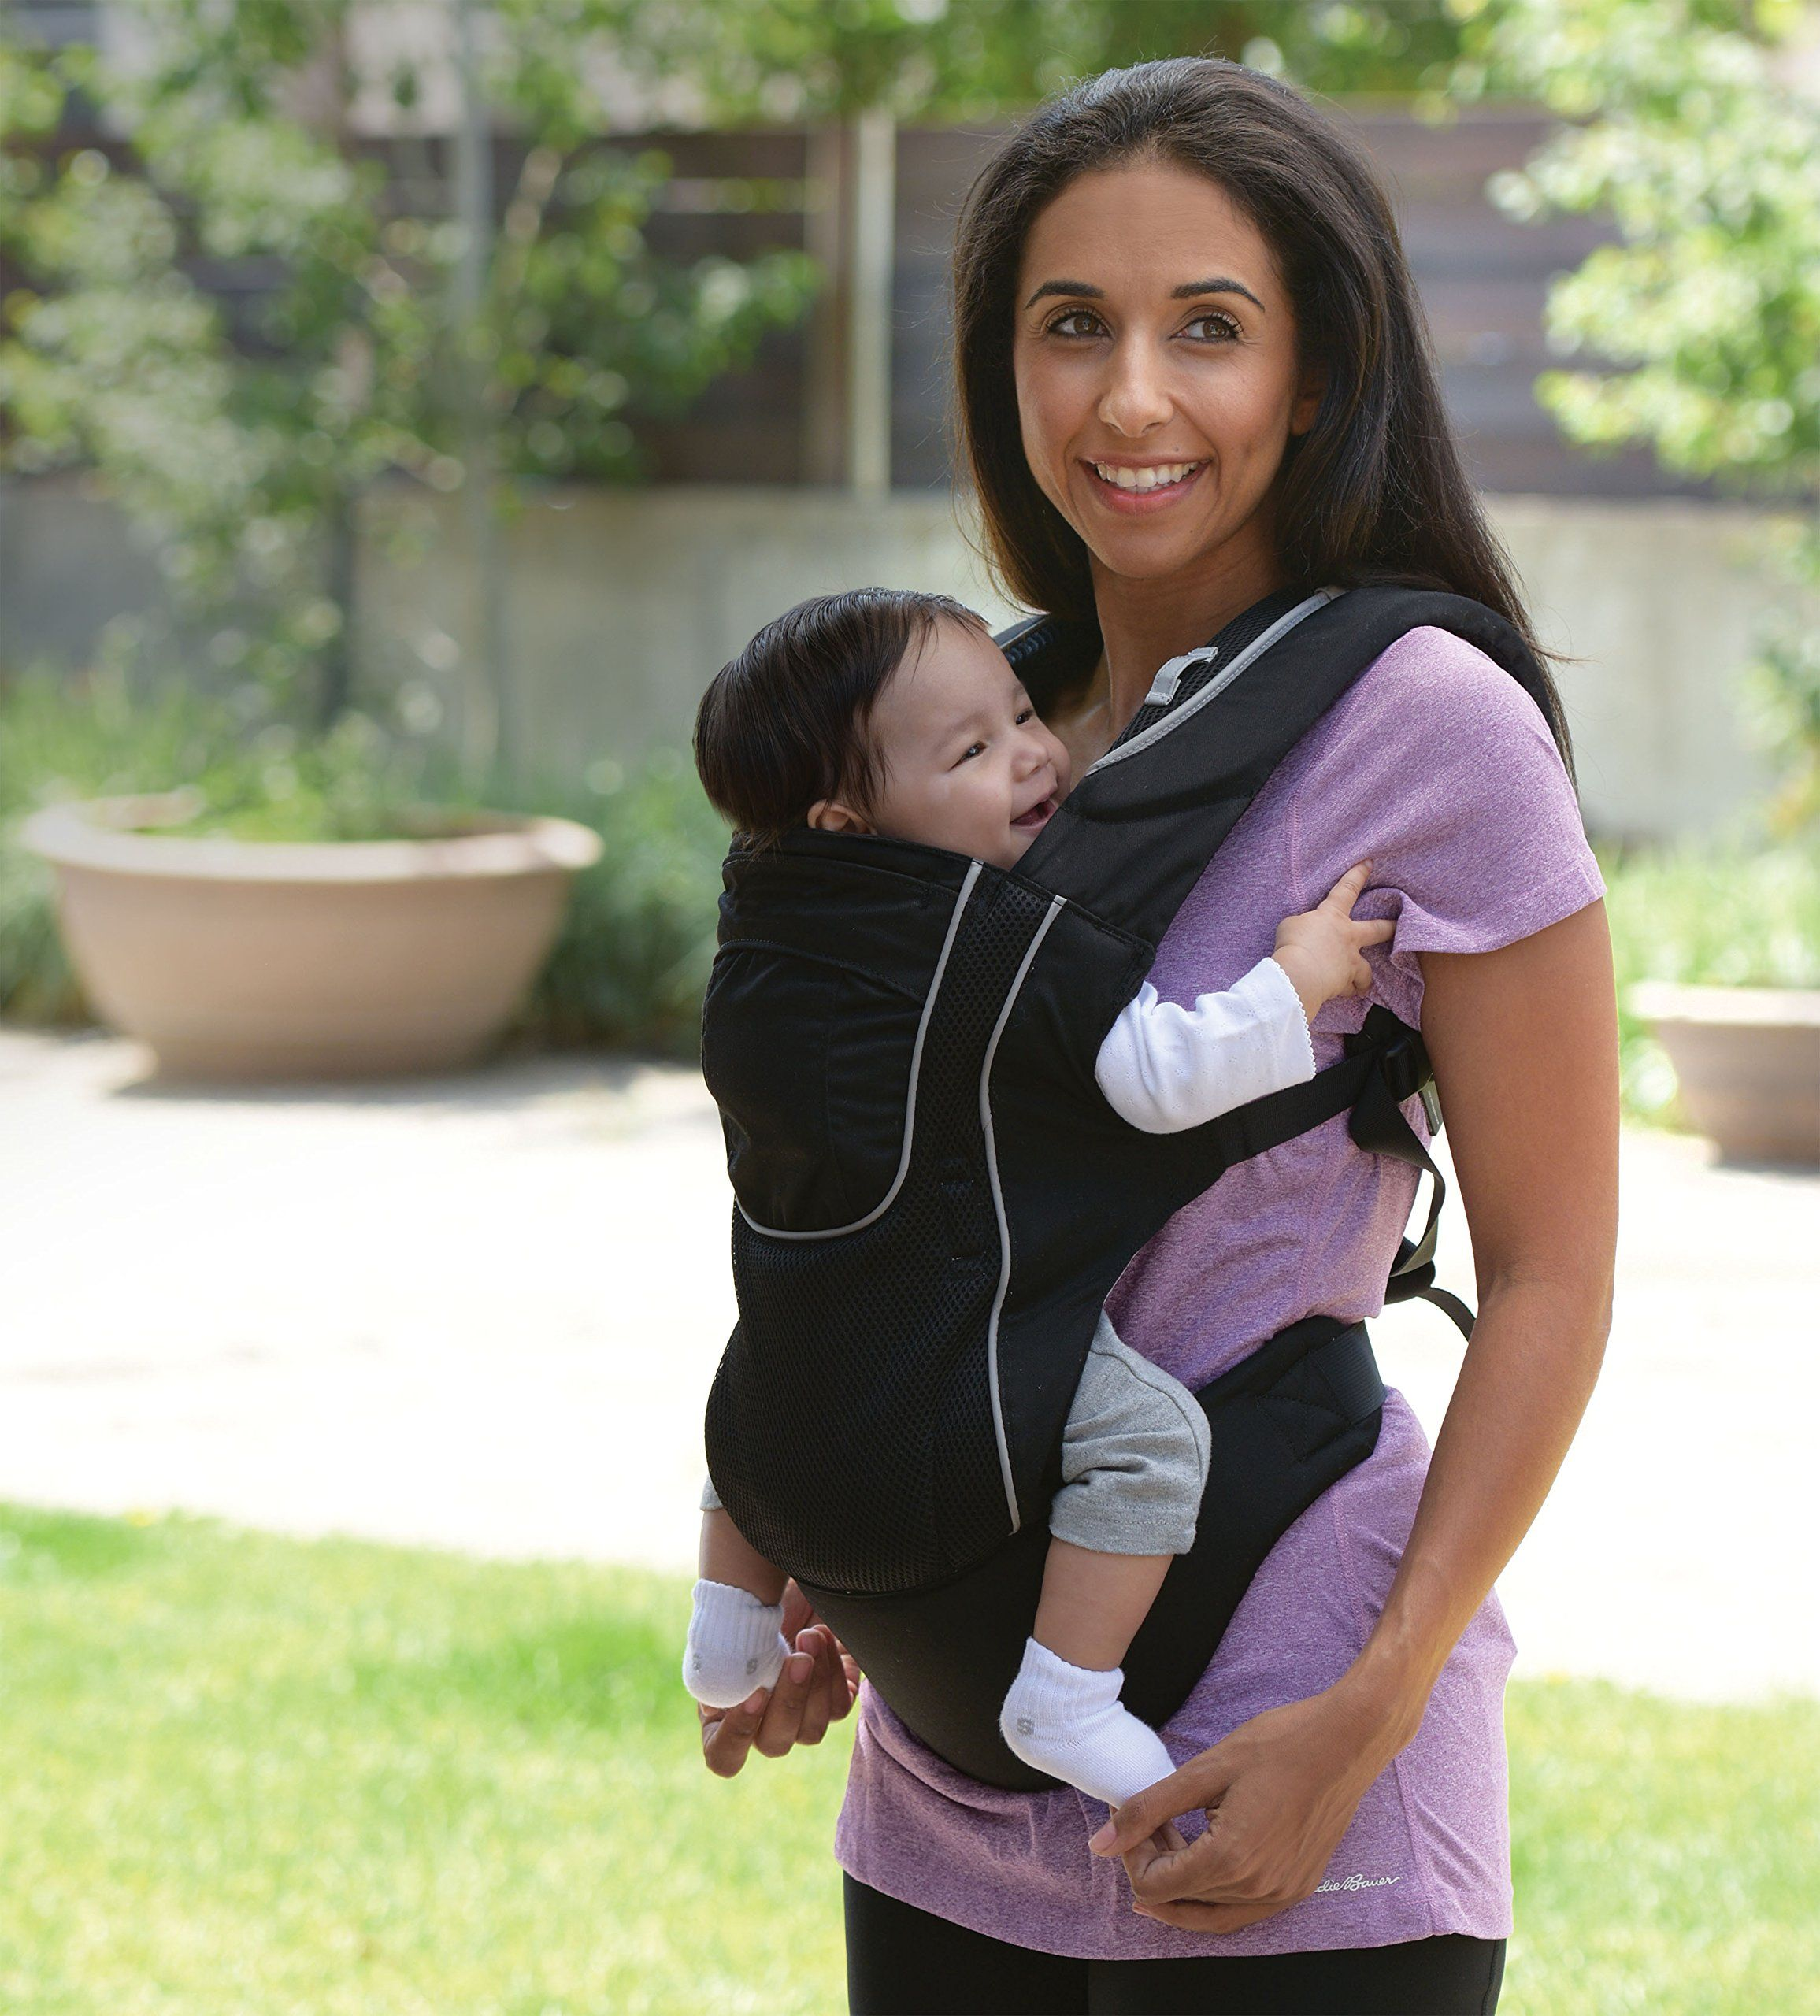 Eddie Bauer 3in1 Comfort Baby Carrier Black Read More At The